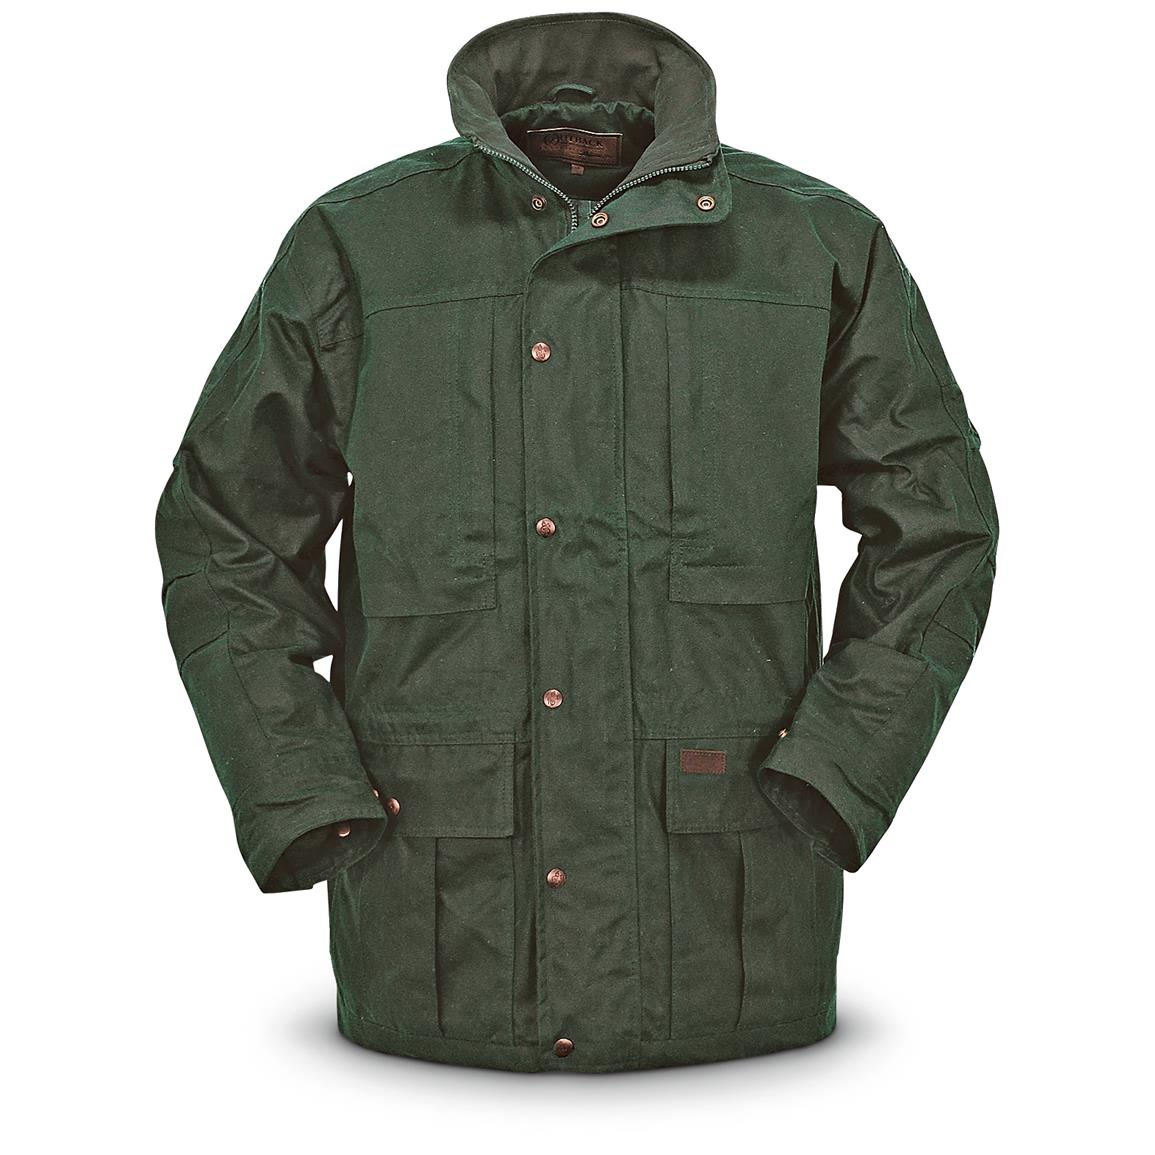 Outback Trading Deer Hunter Waterproof Oilskin Jacket, Green